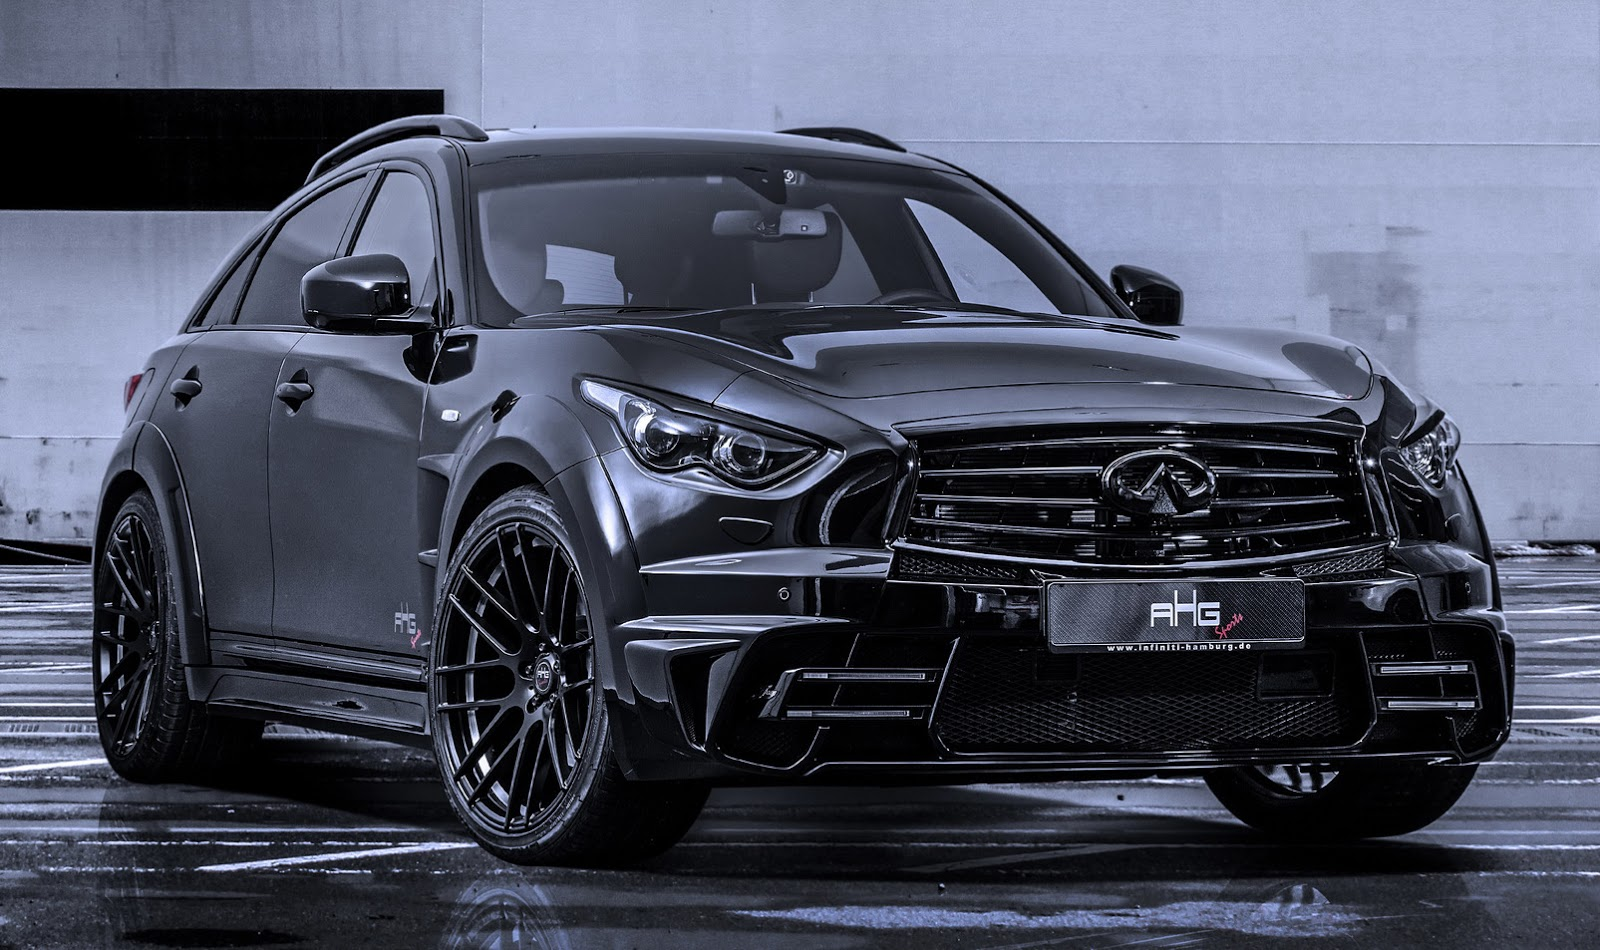 Ahg Sports Tweaks Infiniti Qx70 Forcegt Com